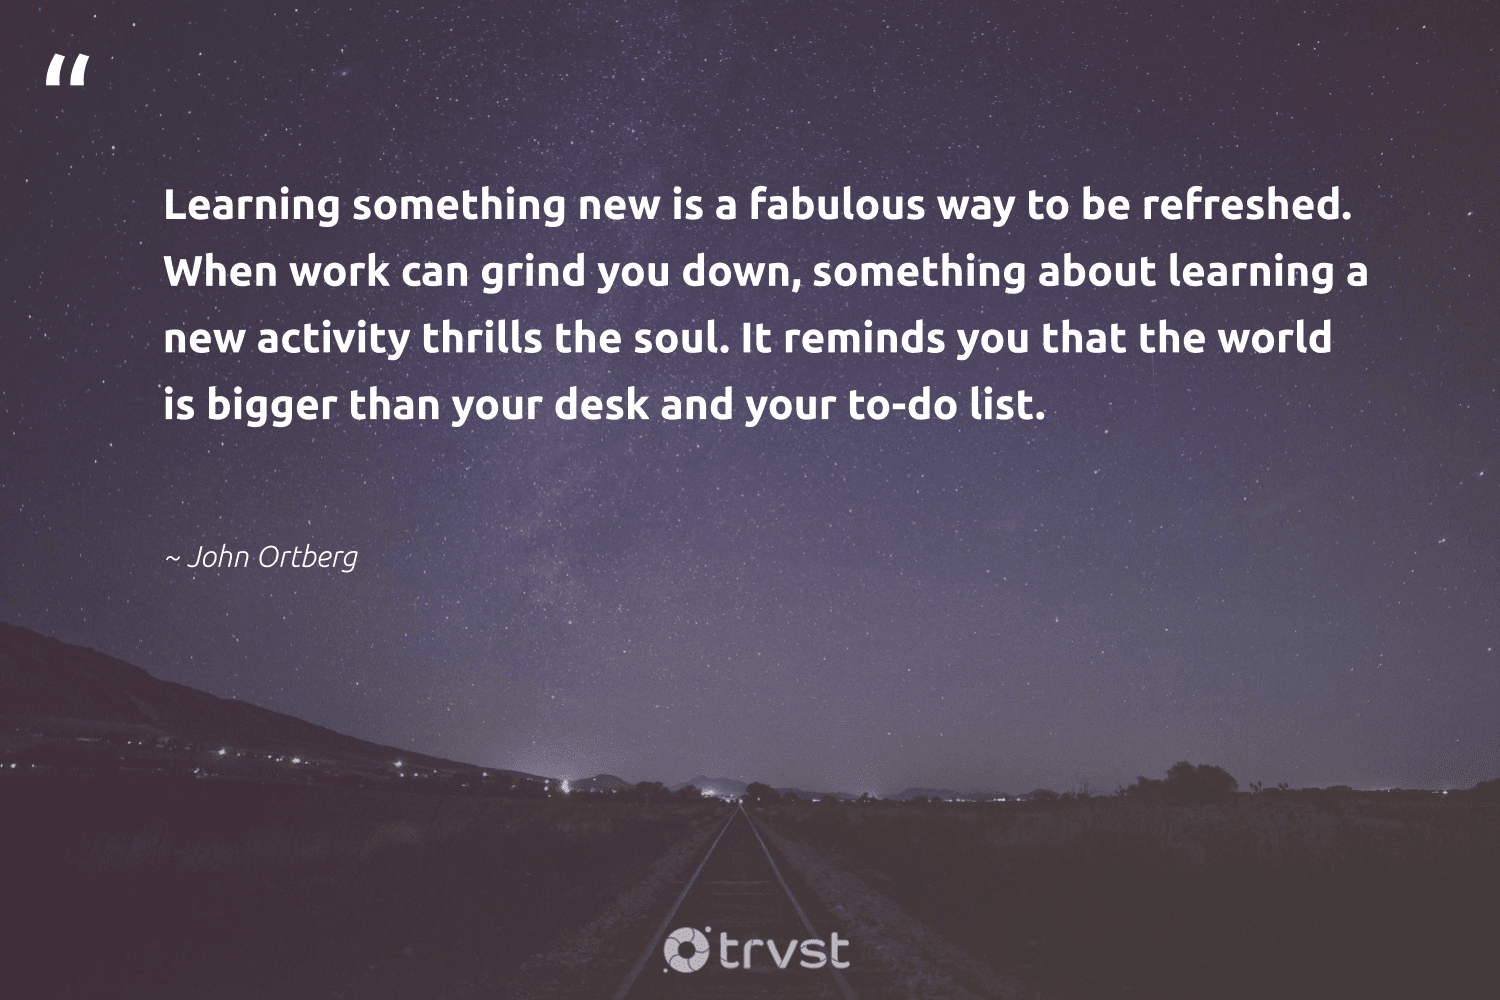 """""""Learning something new is a fabulous way to be refreshed. When work can grind you down, something about learning a new activity thrills the soul. It reminds you that the world is bigger than your desk and your to-do list.""""  - John Ortberg #trvst #quotes #softskills #planetearthfirst #nevergiveup #impact #begreat #collectiveaction #futureofwork #dotherightthing #thinkgreen #socialimpact"""